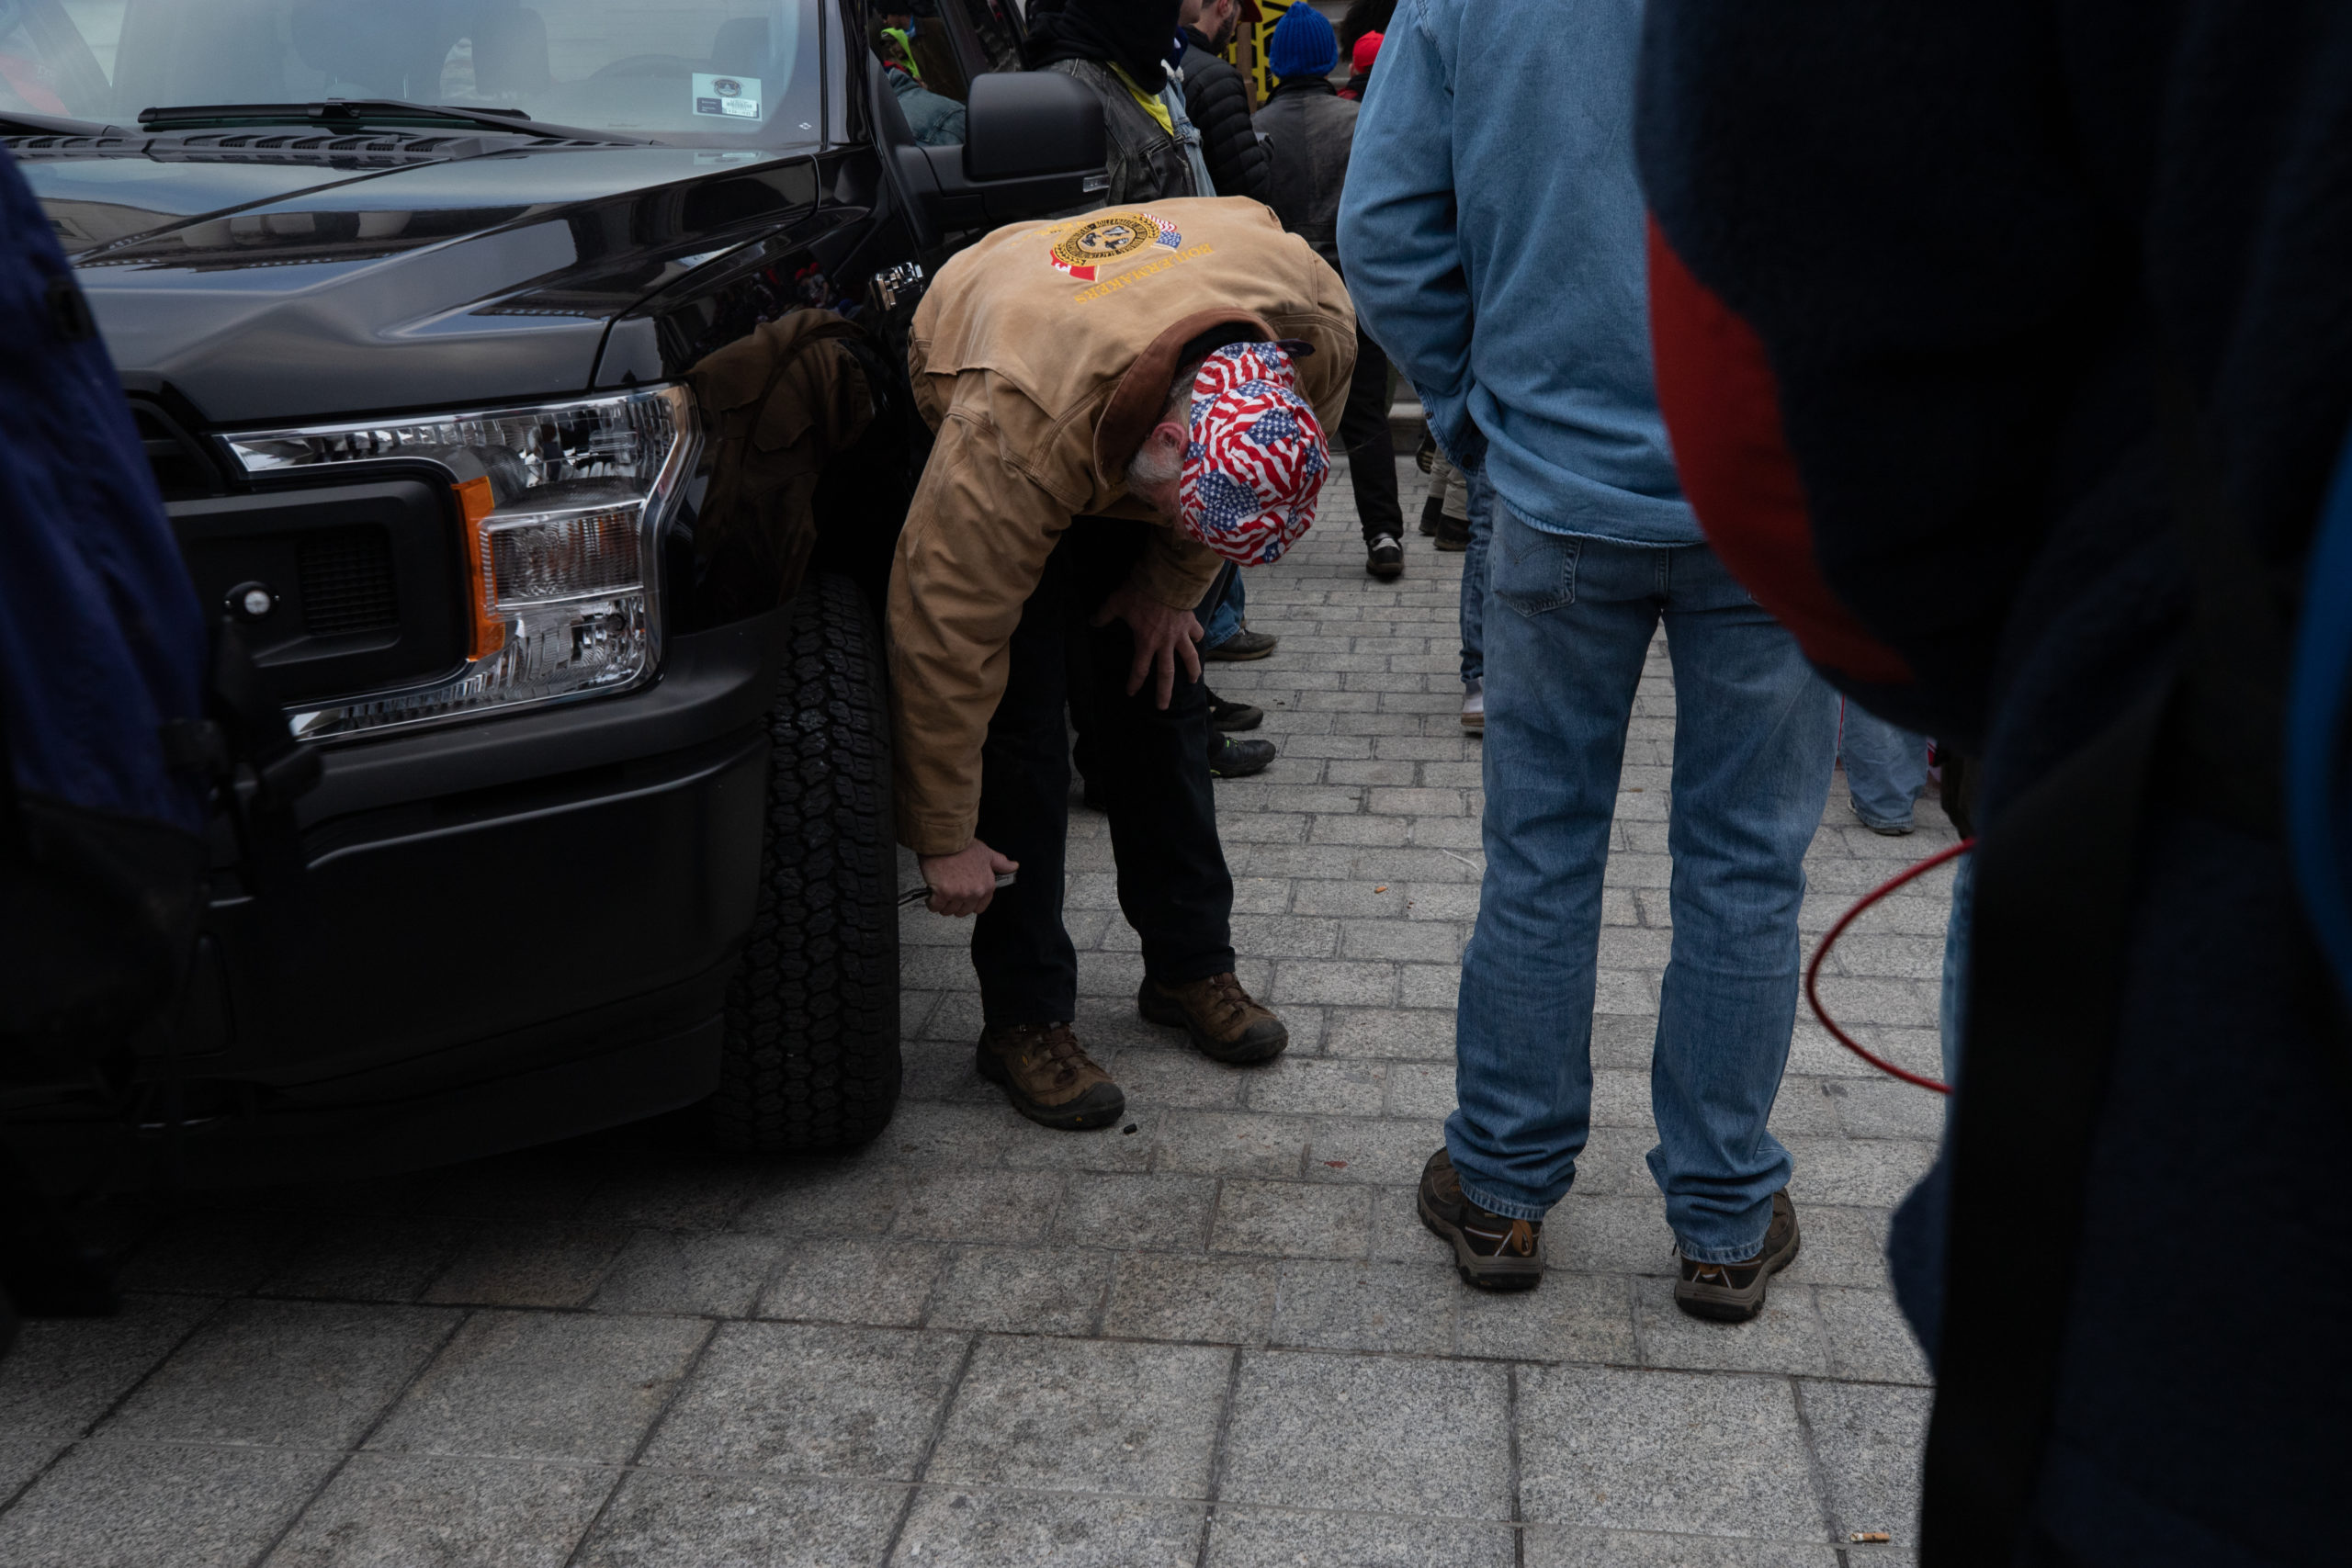 A demonstrator slashed the tires on law enforcement vehicles in Washington, D.C. on Jan. 6, 2021. (Kaylee Greenlee – Daily Caller News Foundation)